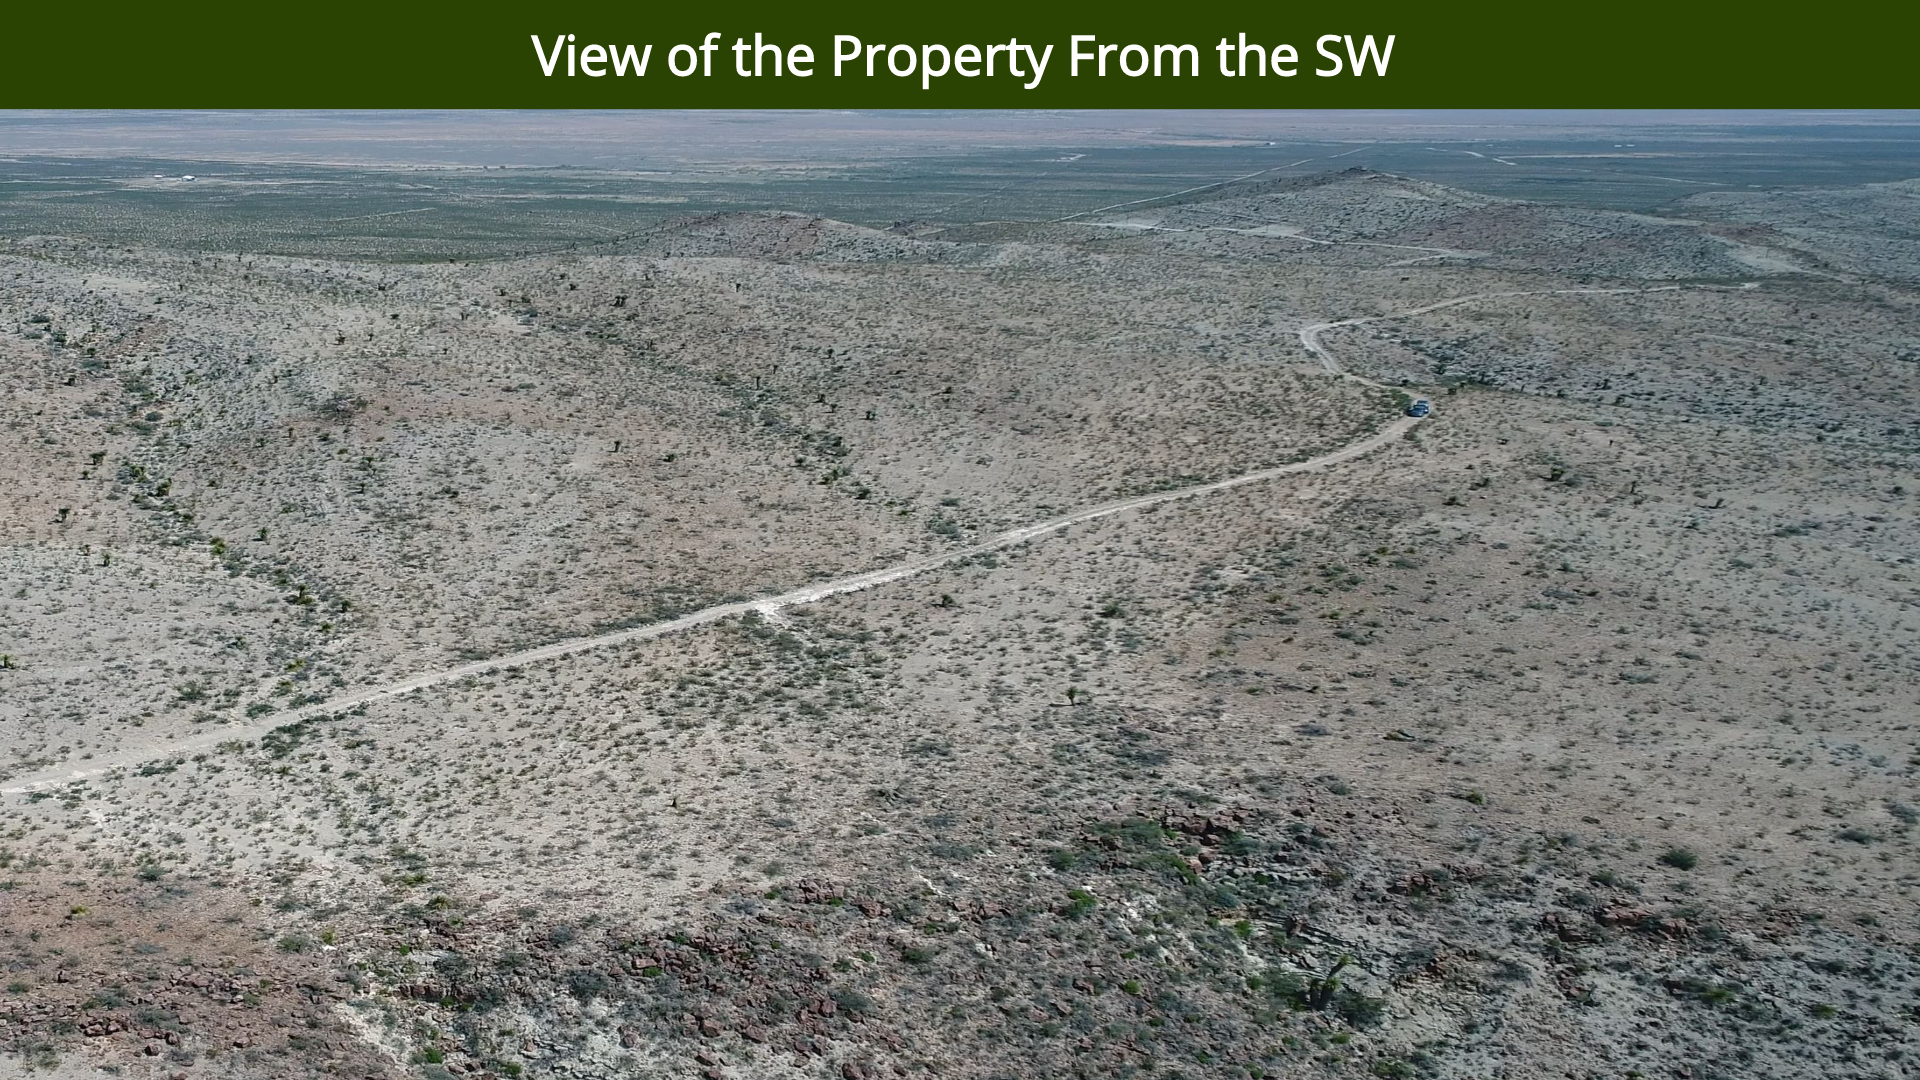 View of the Property From the SW